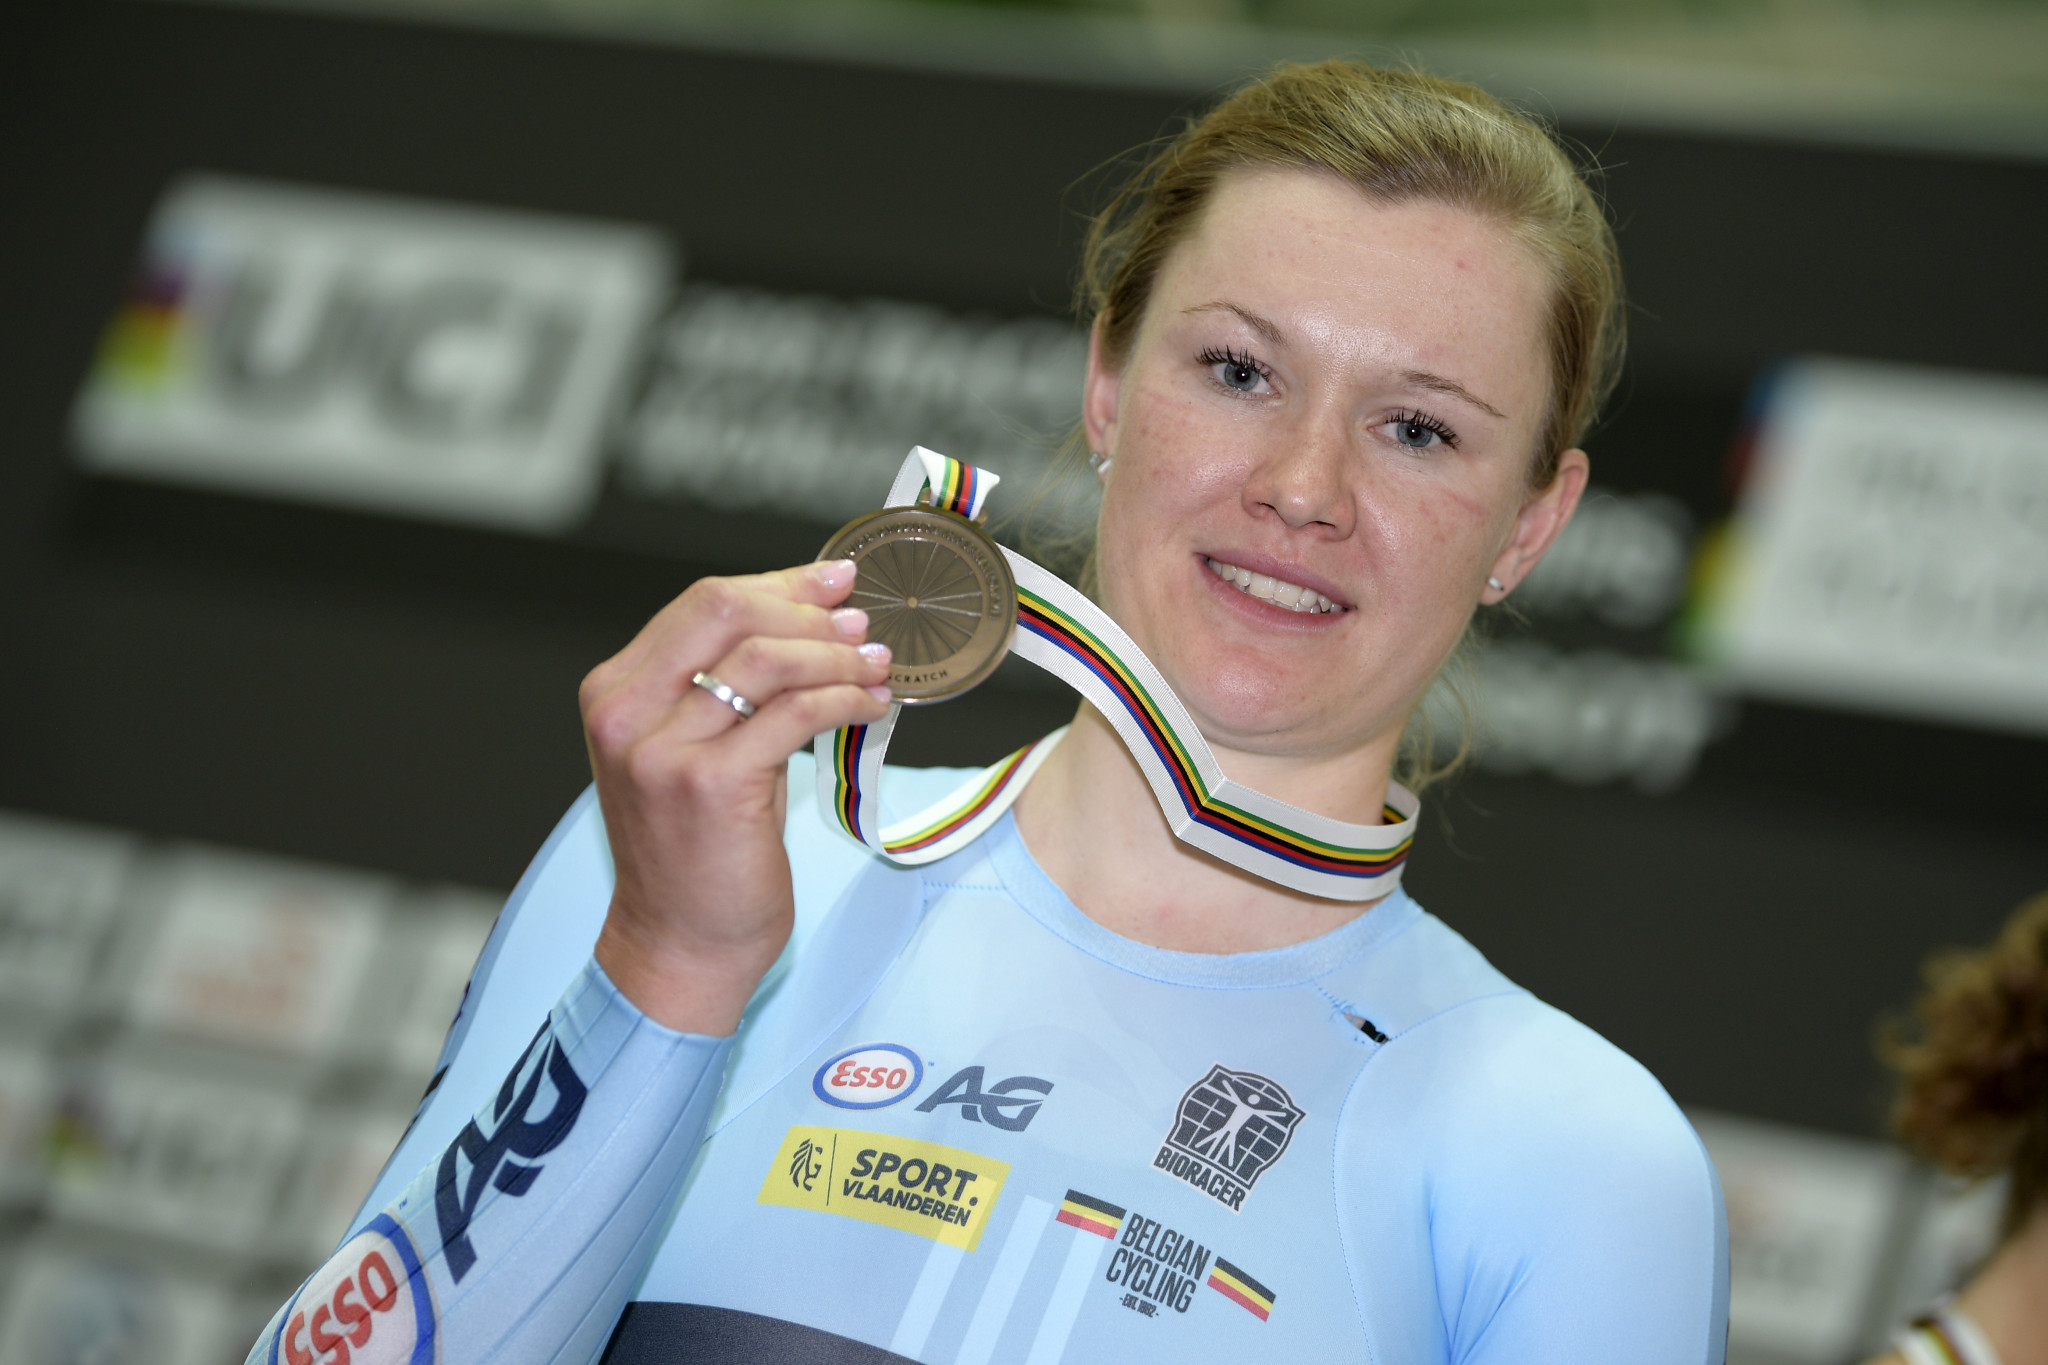 Belgium's d'Hoore takes first stage in UCI Women's World Tour race in Basque region